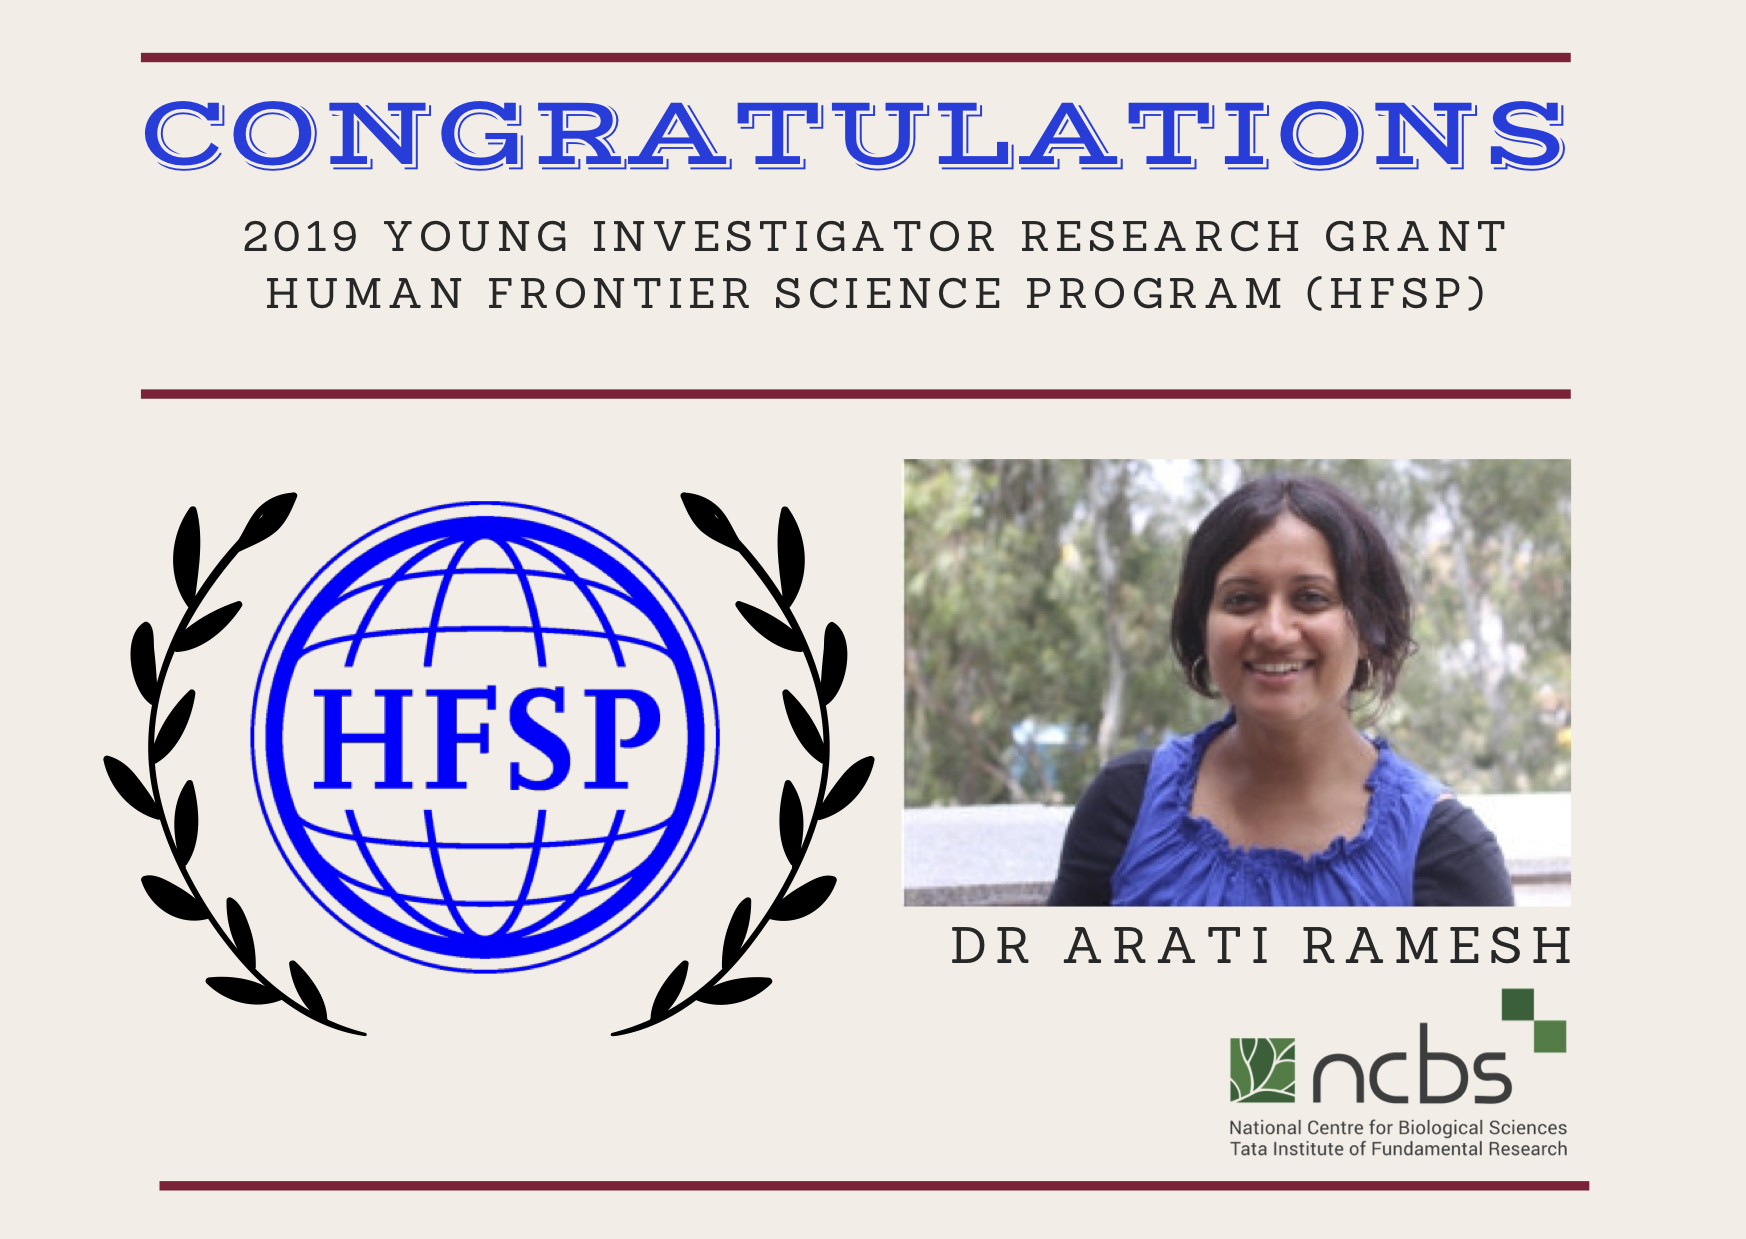 Dr Arati Ramesh awarded the 2019 HFSP Young Investigator Grant